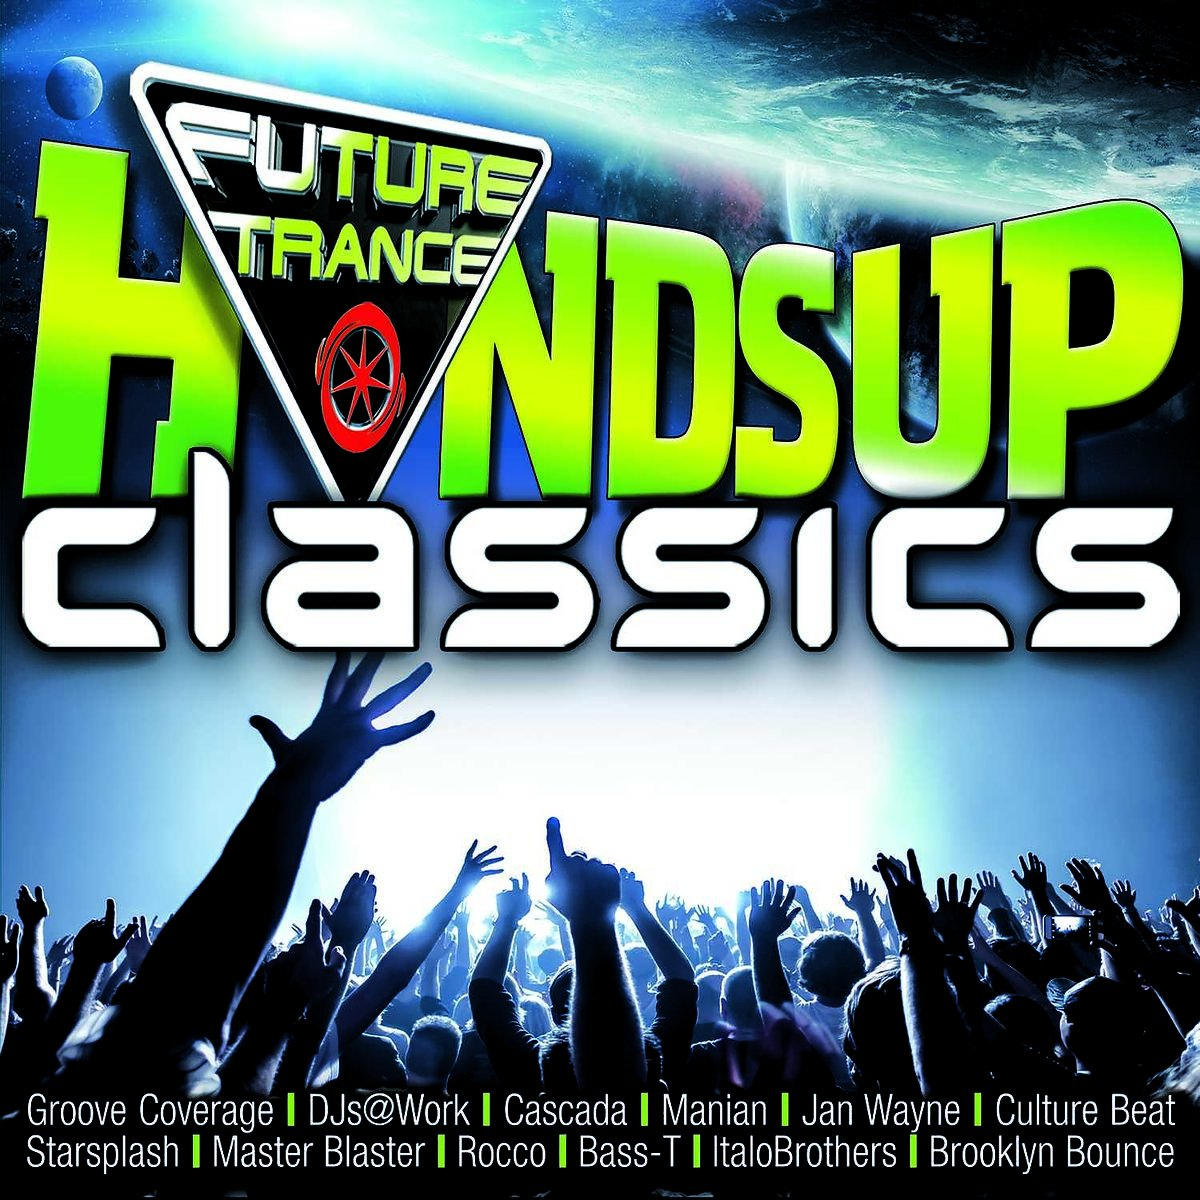 Various Artists-Future Trance - Hands Up Classics